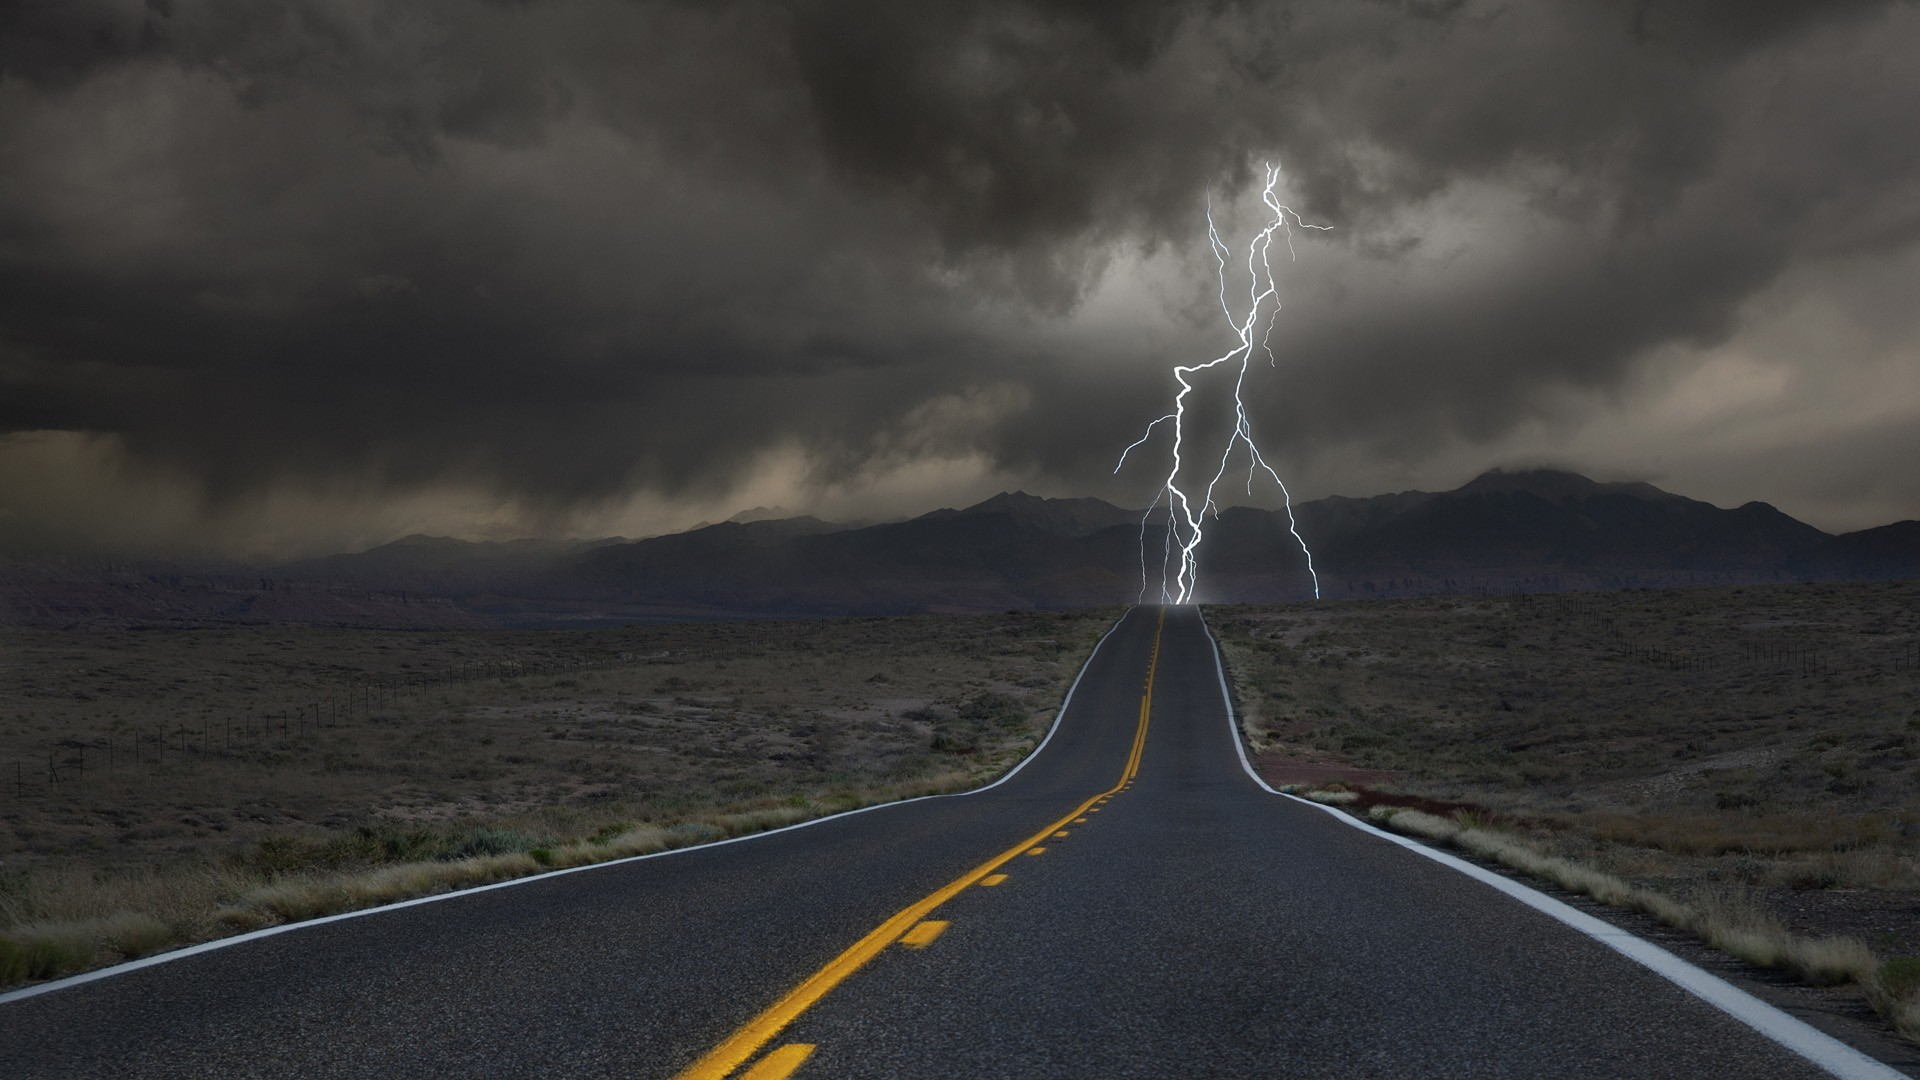 Res: 1920x1080, Storm Wallpaper for Free – Awesome HDQ Cover Backgrounds – download for free